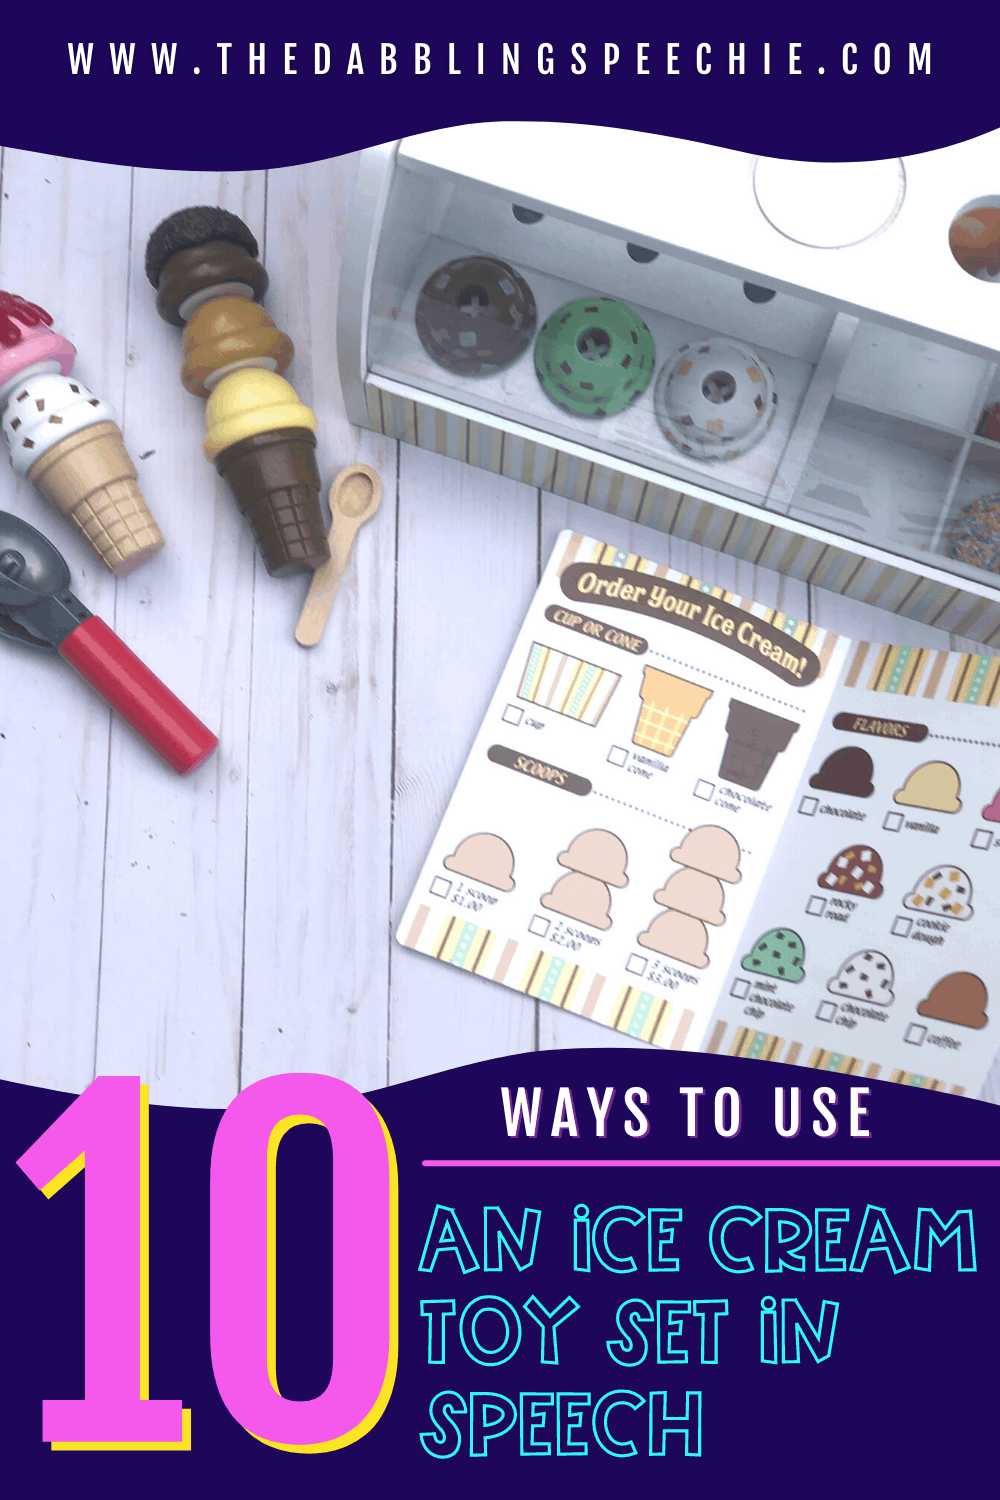 Engage your speech therapy students with these 10 ideas for using an ice cream toy set in speech therapy! So many speech skills can be targeted with it.